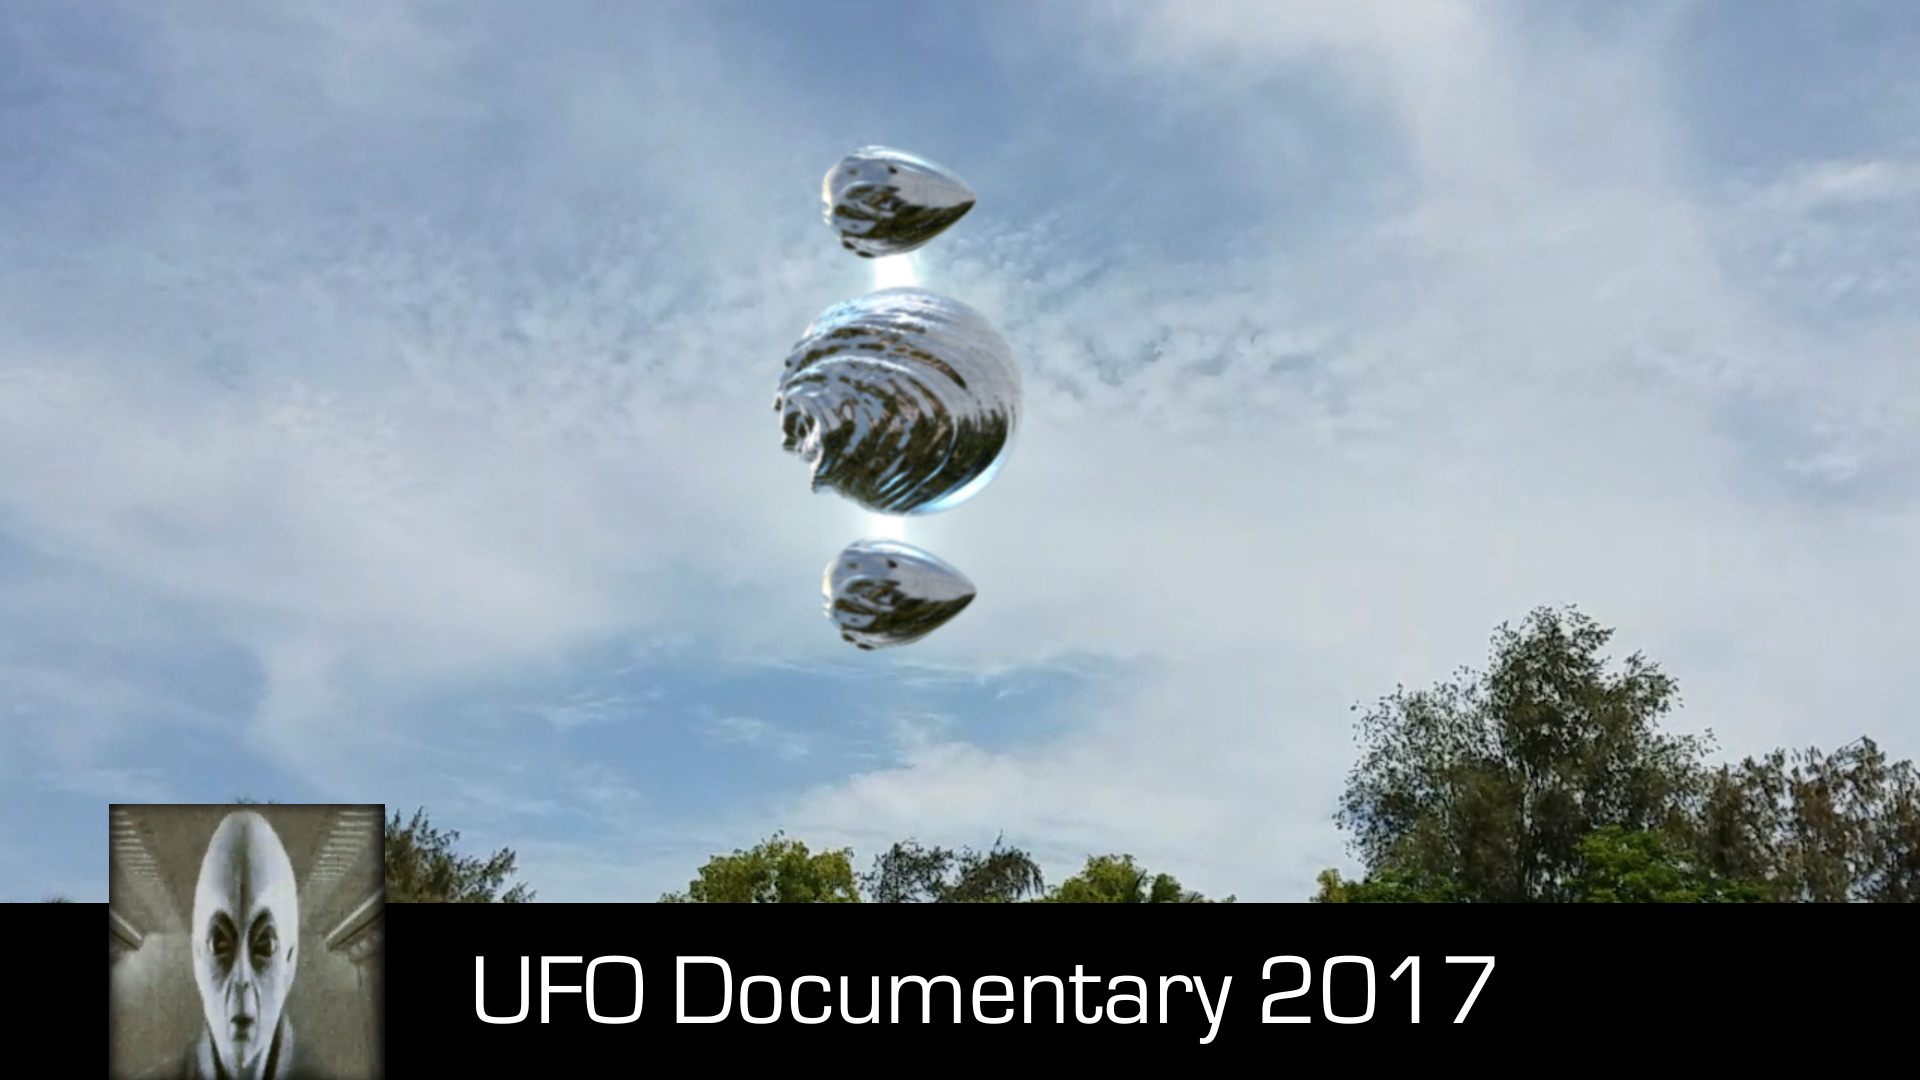 UFO Documentary August 21st 2017